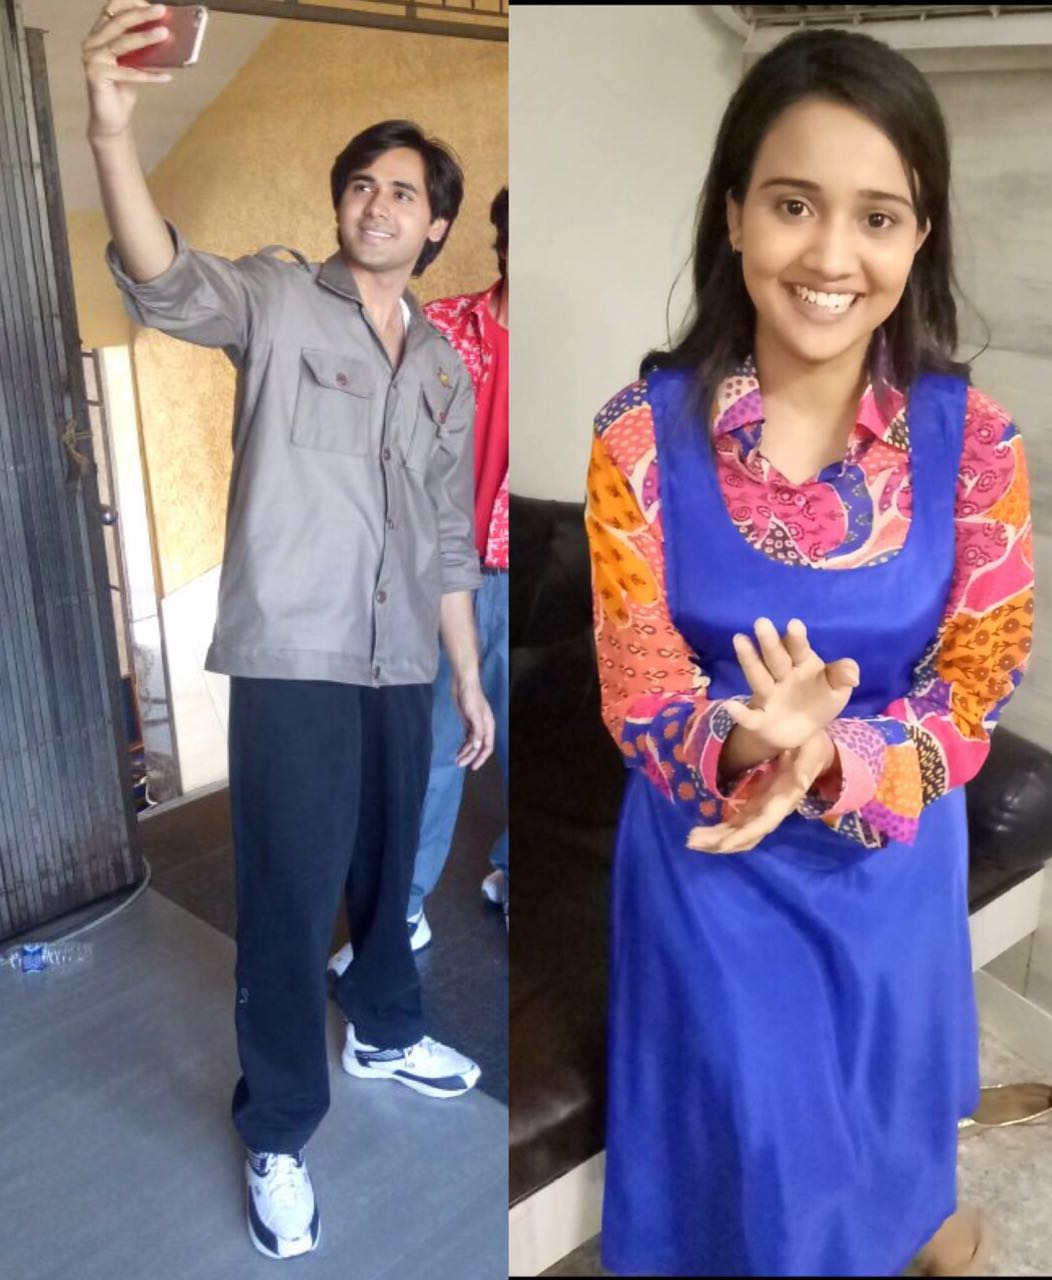 Here are the looks of Randeep Rai & Ashi Singh for the college track